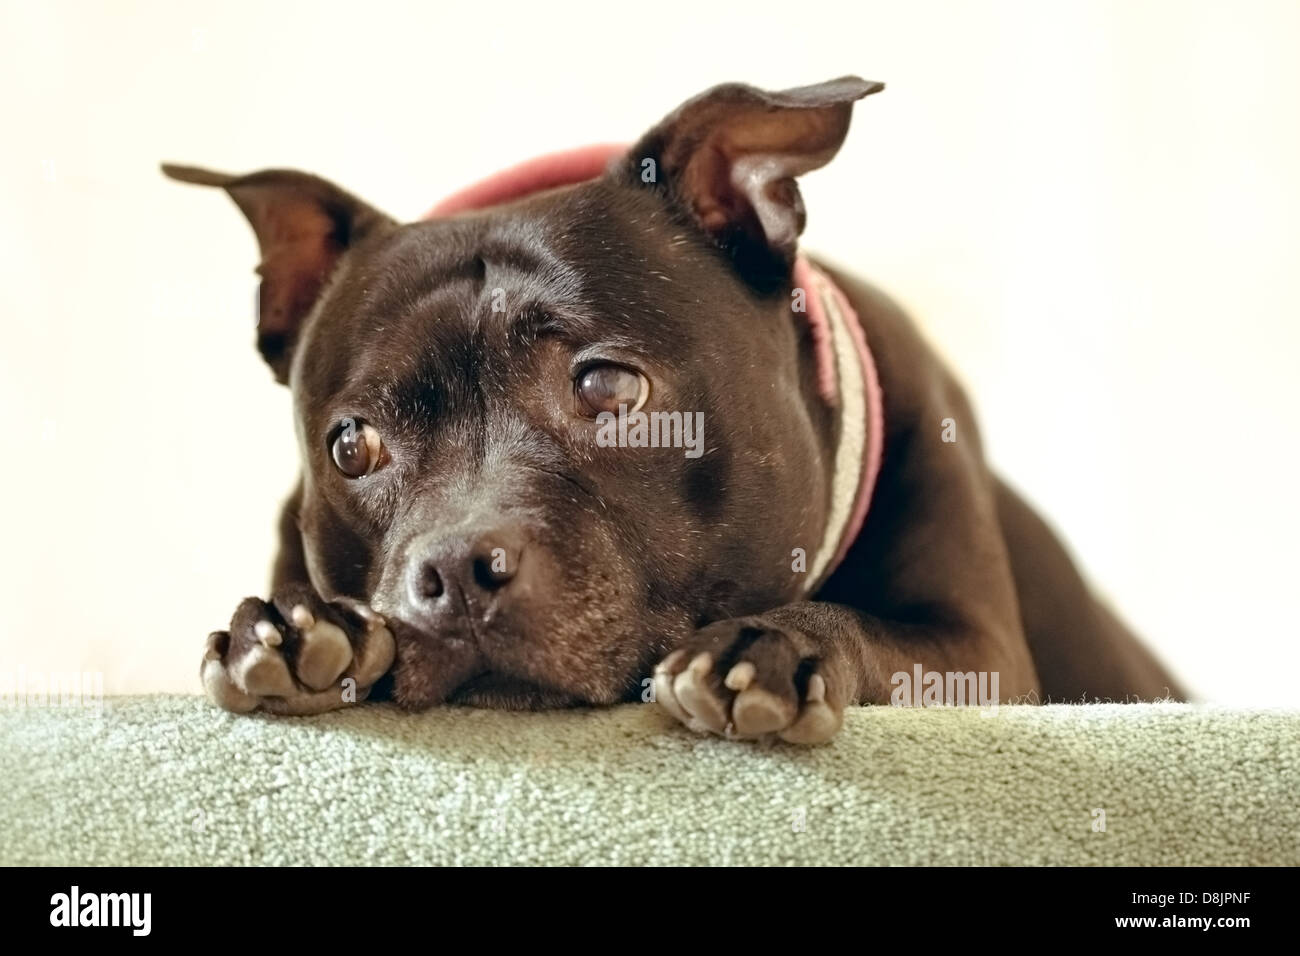 A cute Staffordshire Bull Terrier on a stair - Stock Image